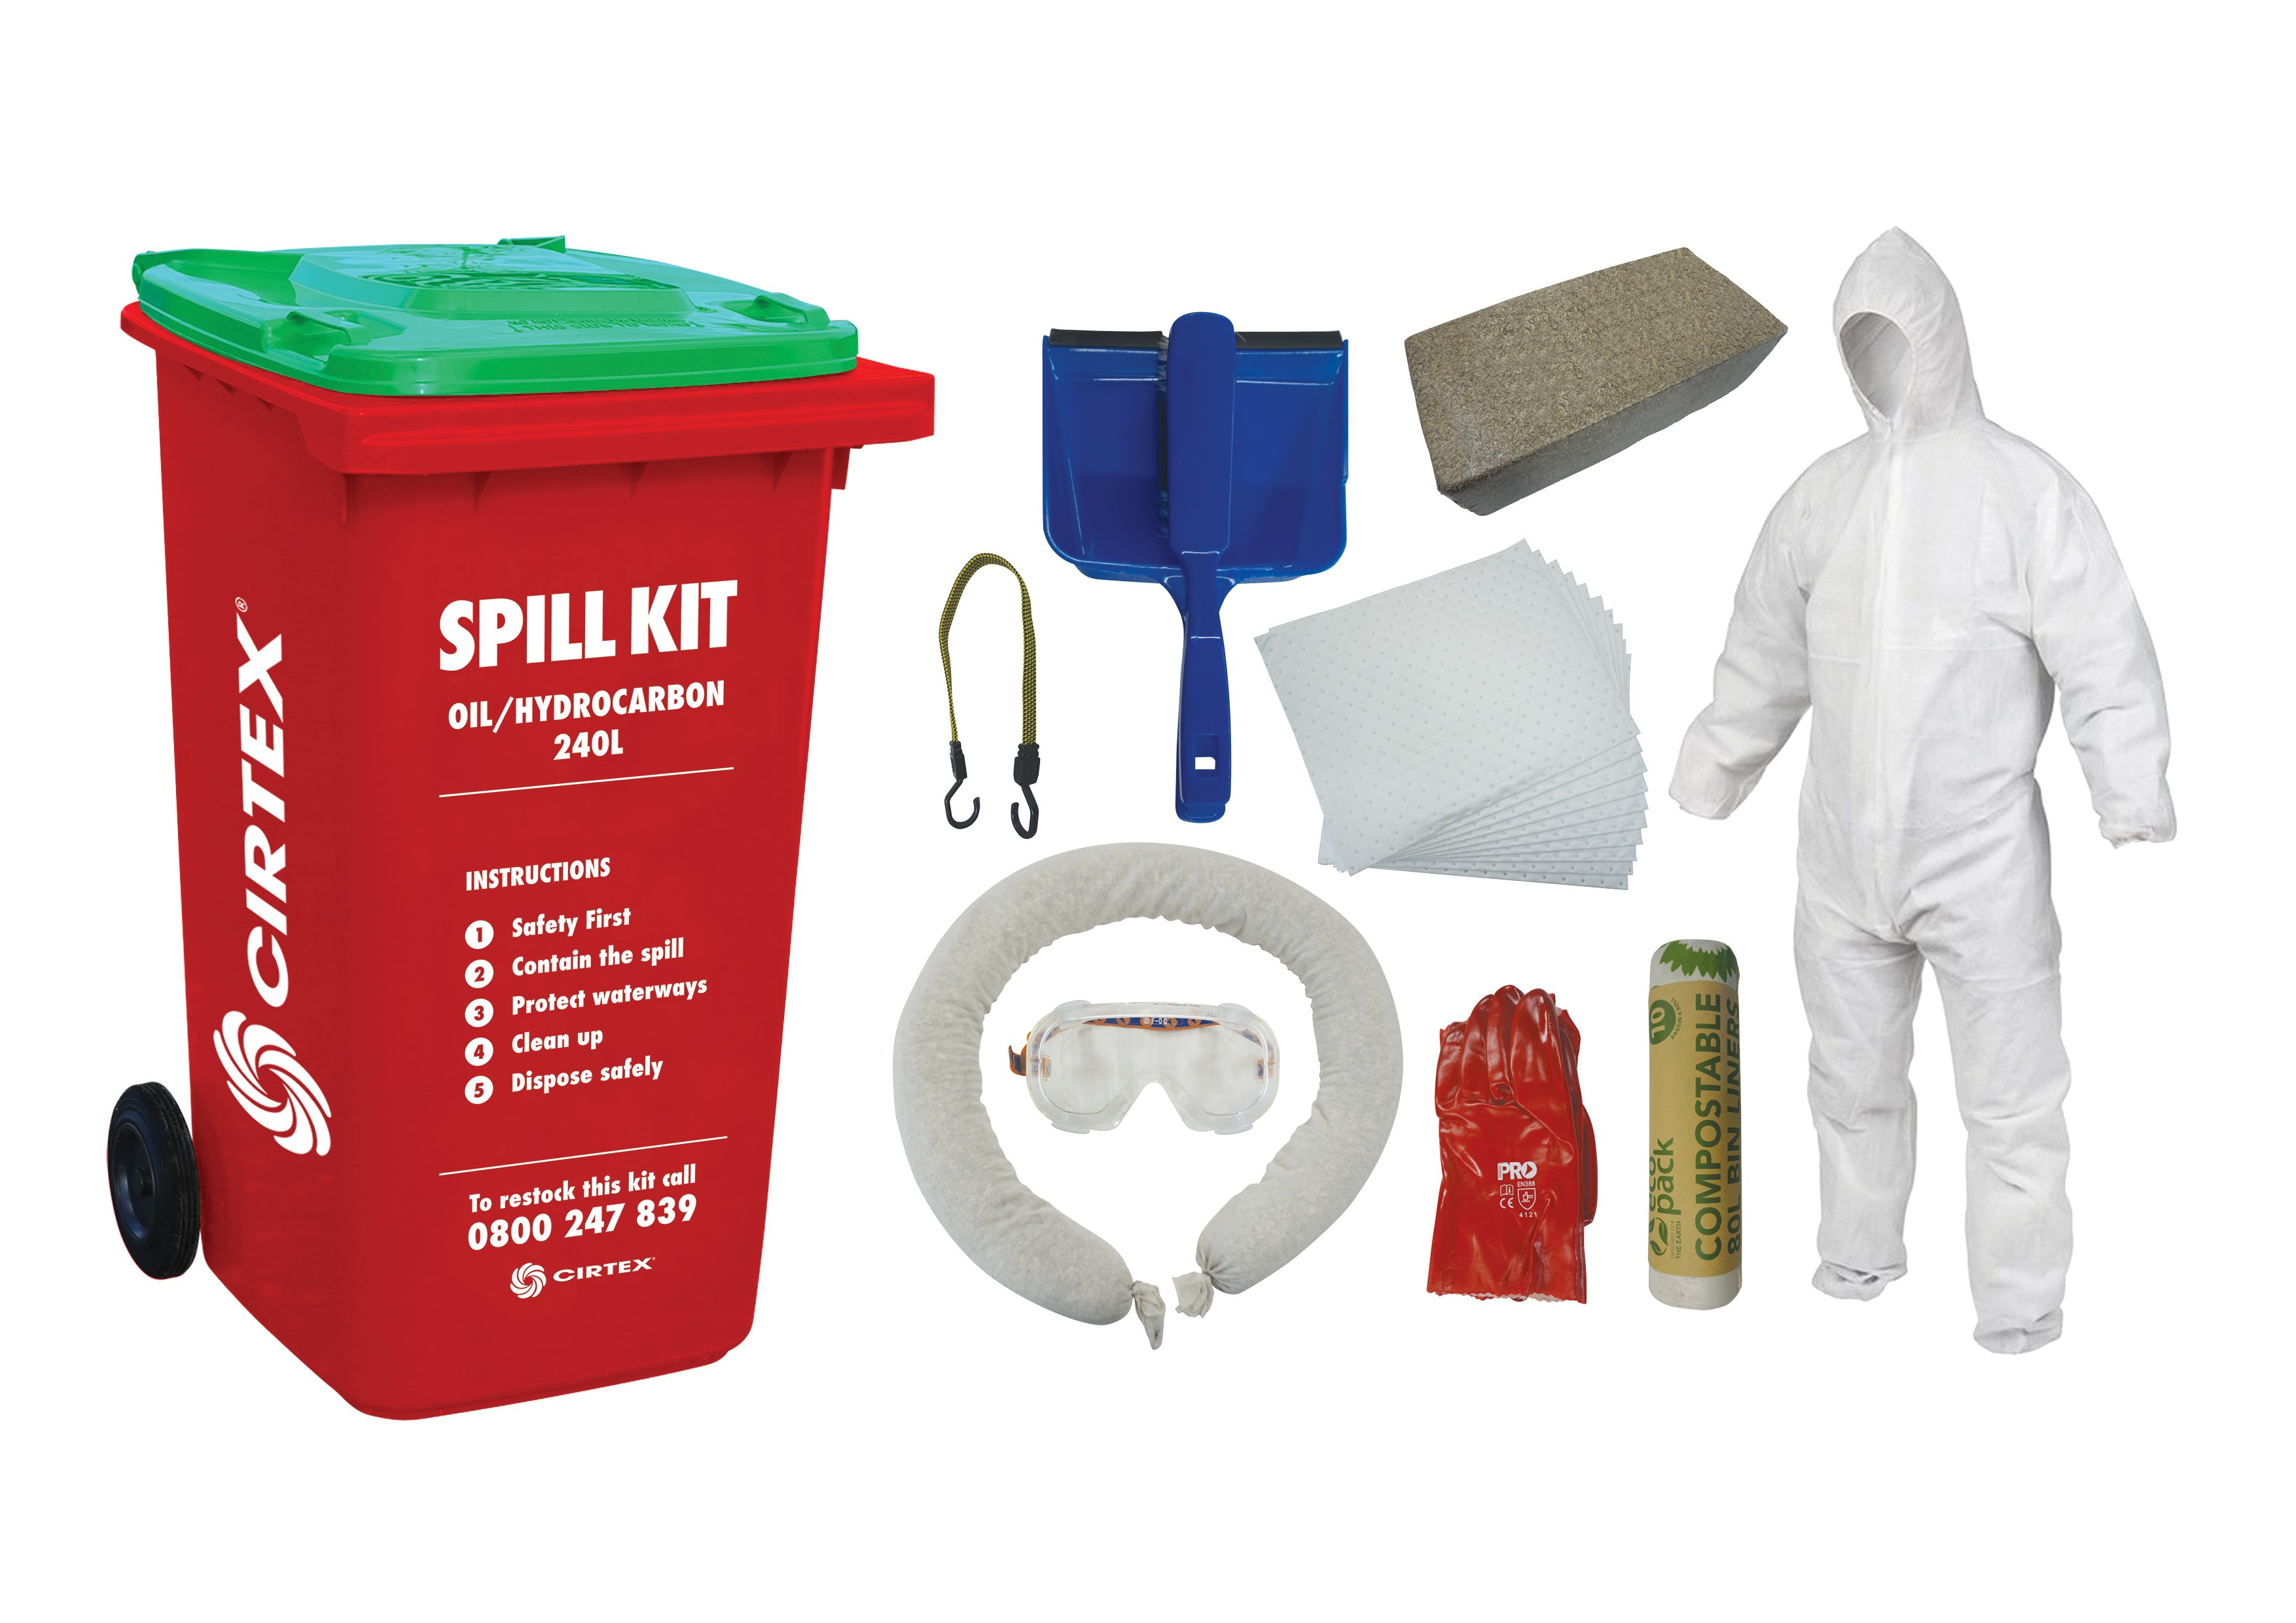 Spill Kit and components